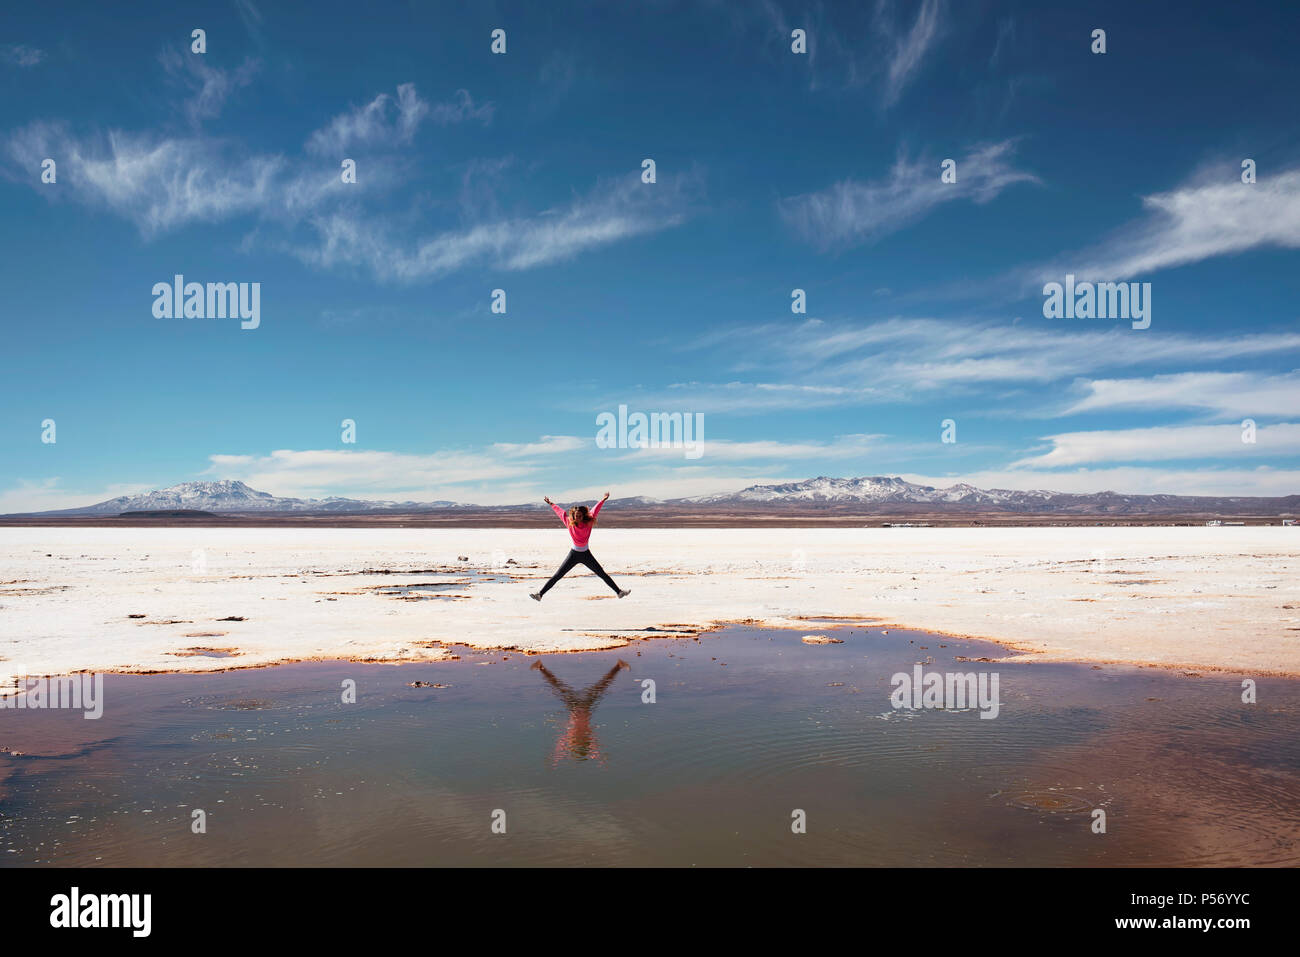 Happy jumping on the side of a natural salt puddle in Salar de Uyuni, Bolivia. - Stock Image